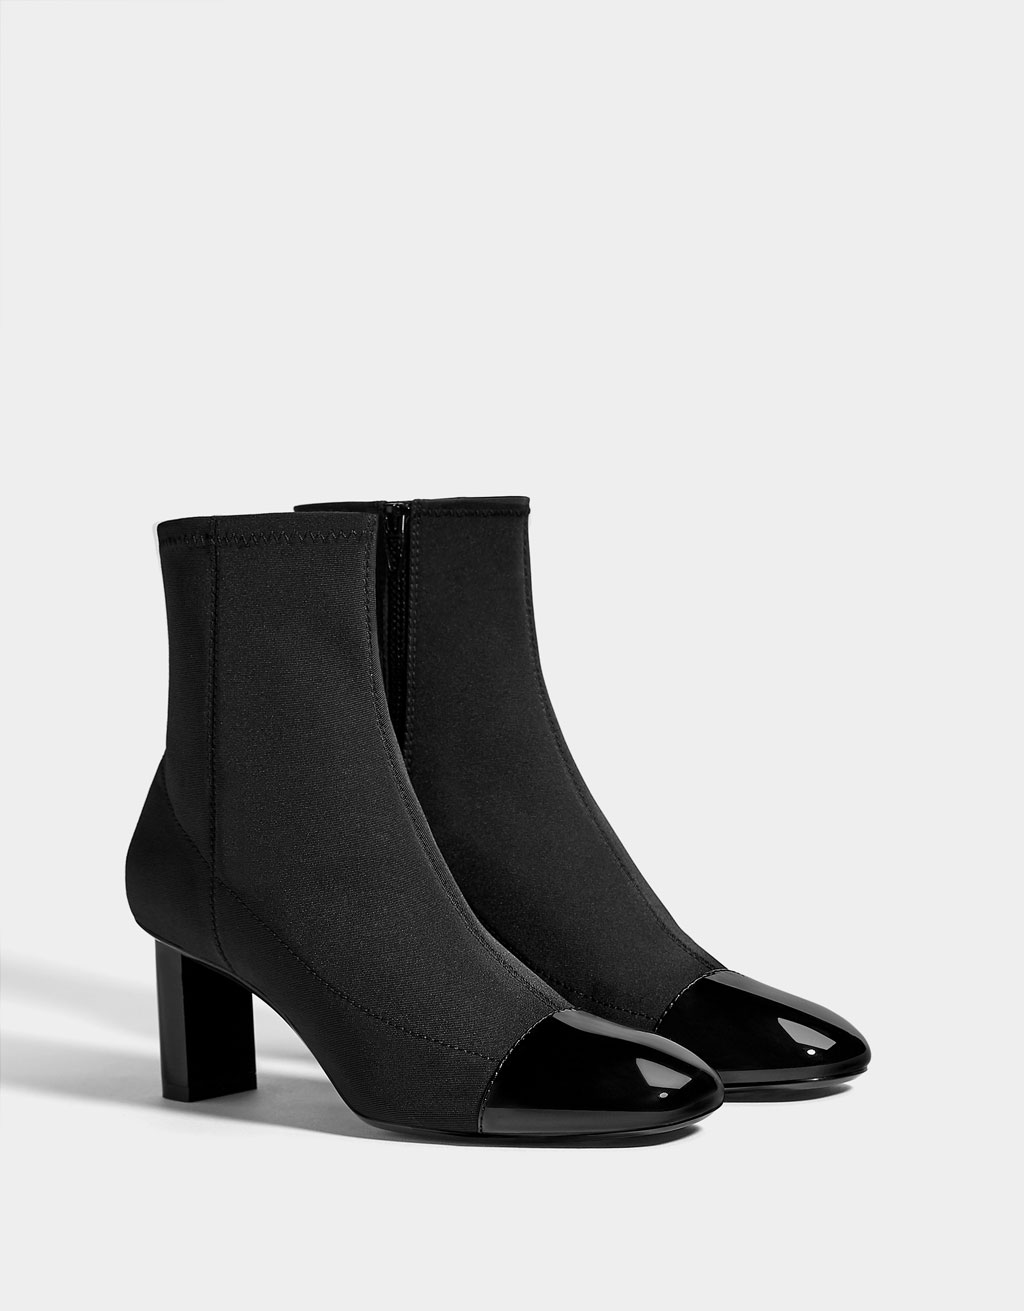 Mid-heel patent finish toe cap ankle boots